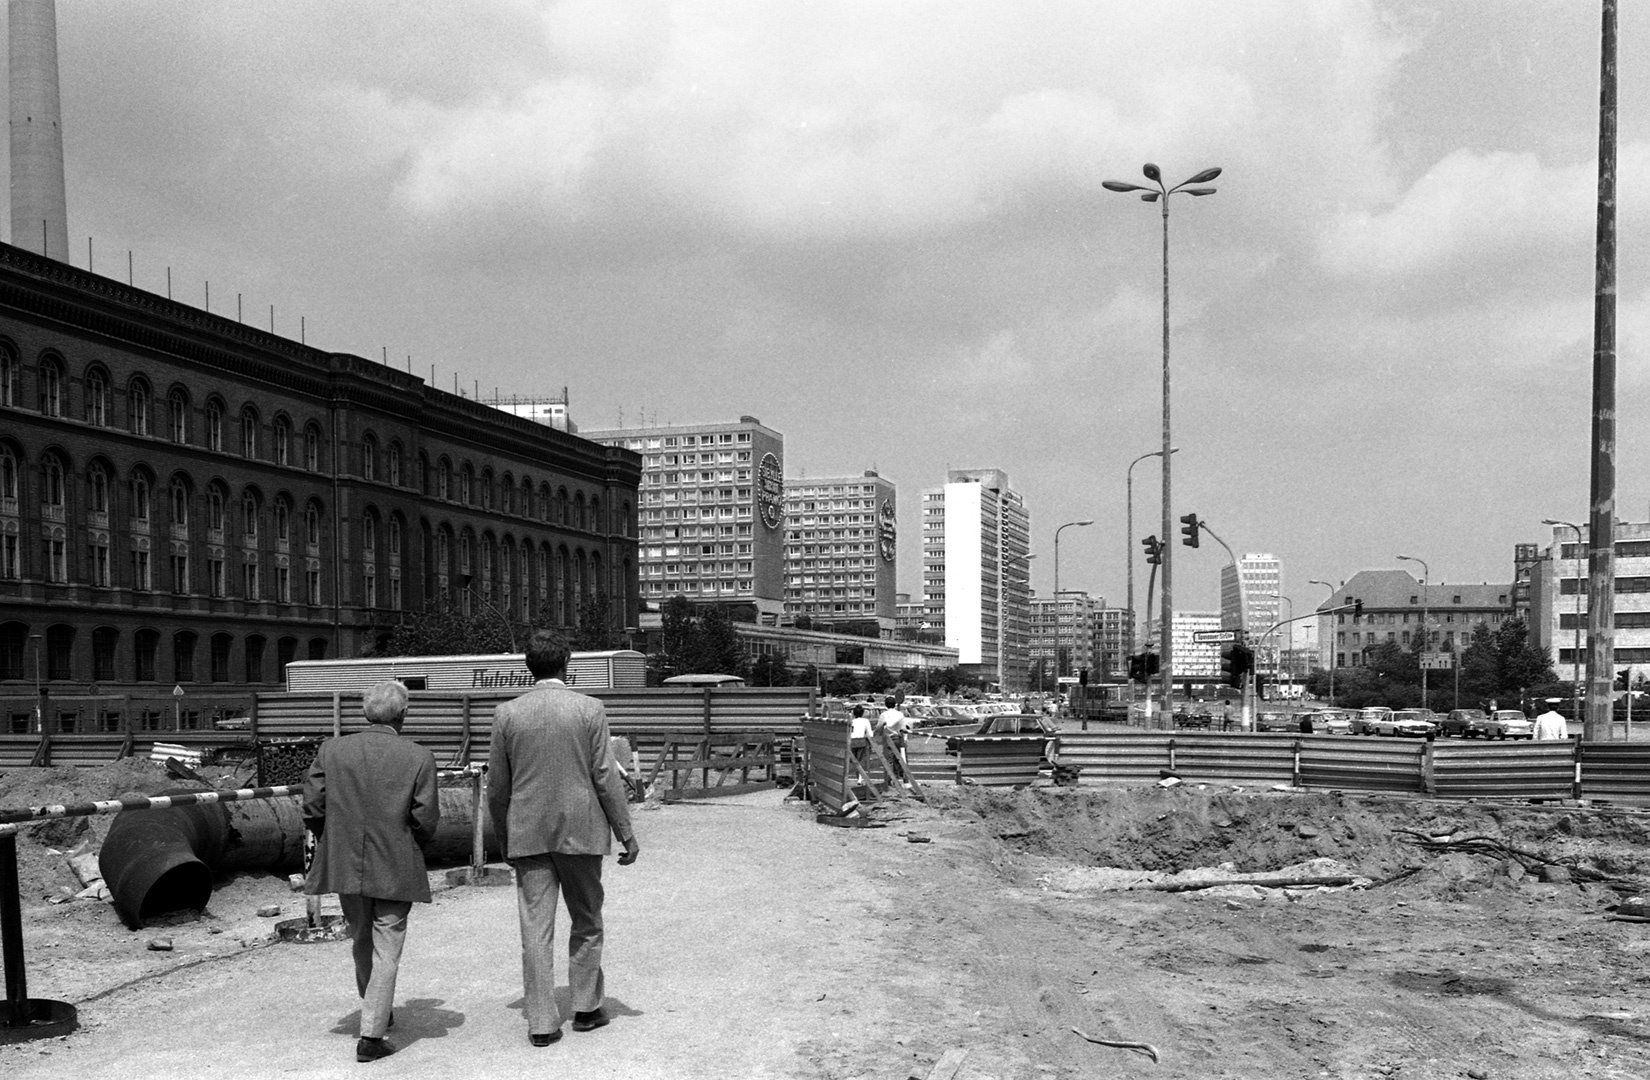 east-berlin-1983_06_Berlino-Est-34